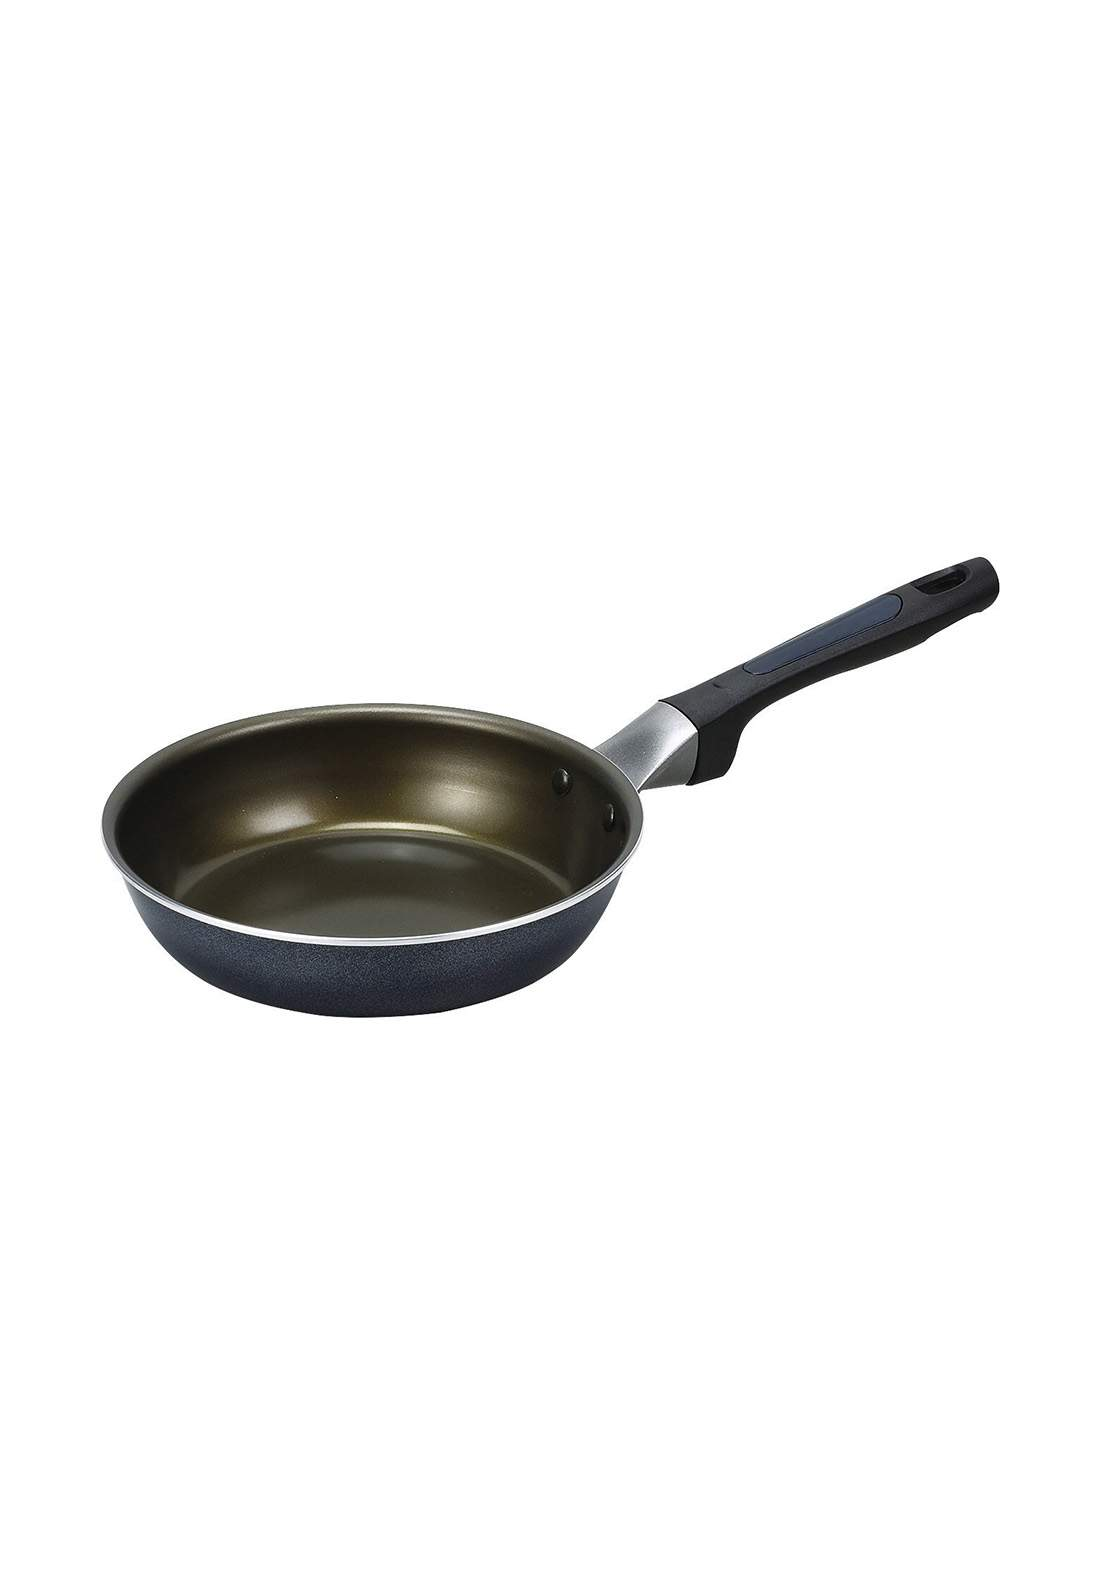 Pearl Metal  HB-5147 Cook Advance Next Spin Coat IH Compatible Frying Pan مقلاة